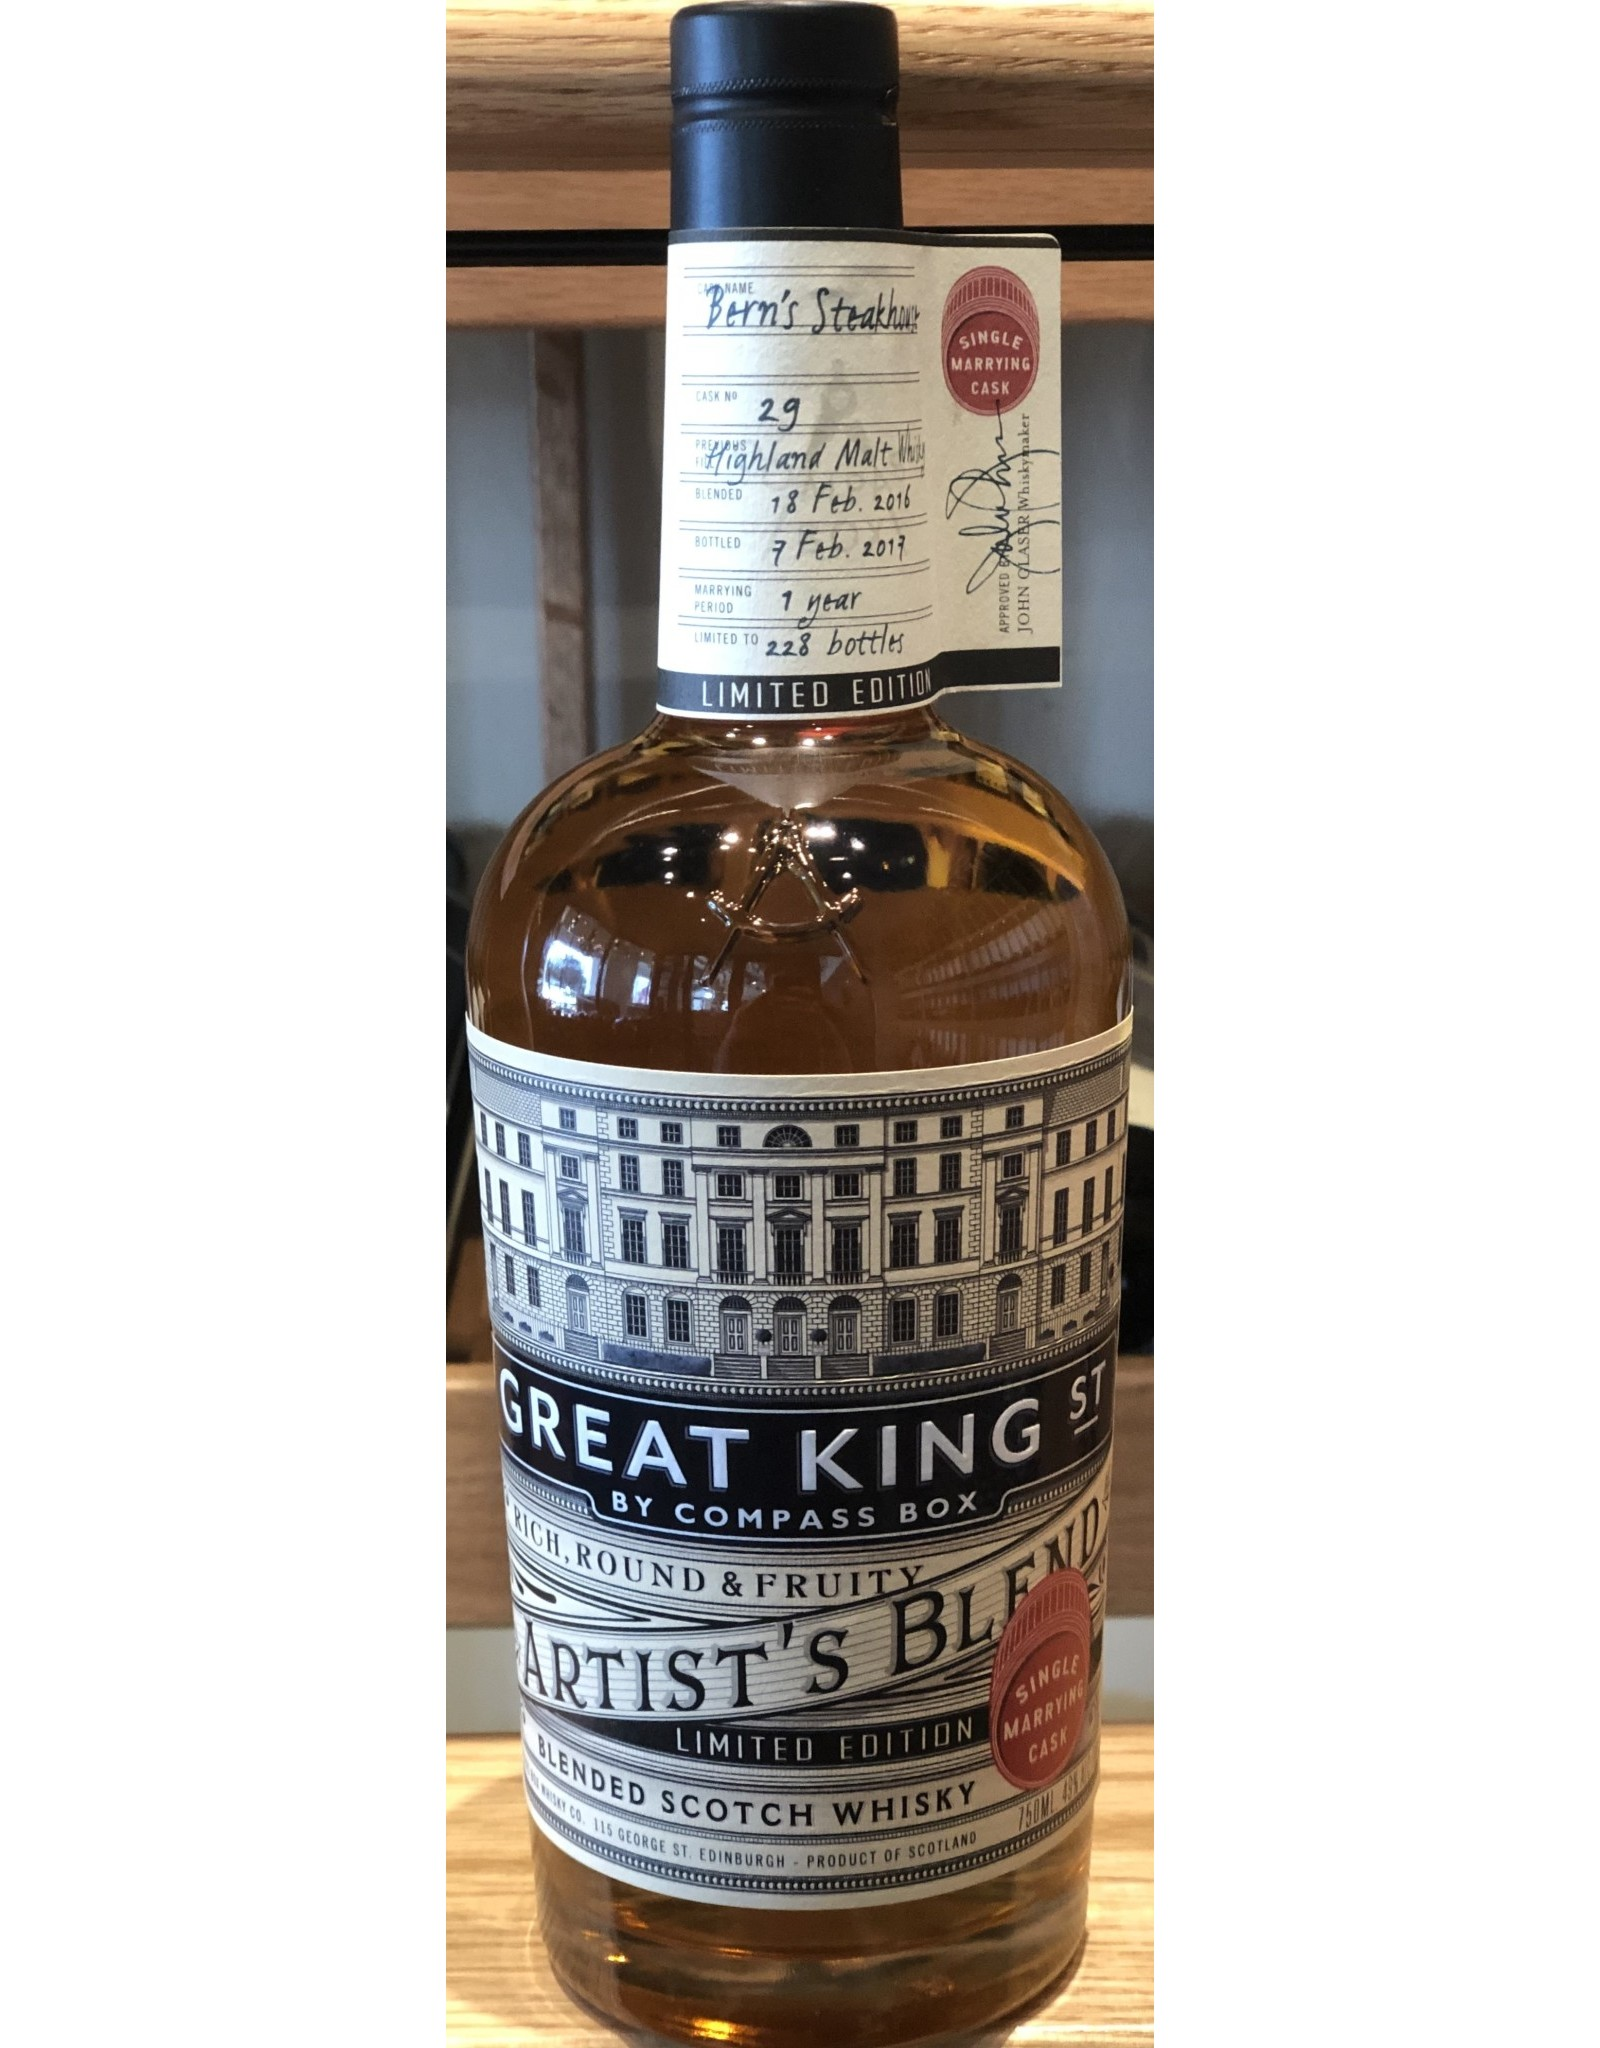 Bern's Select Great King Street Marrying Cask 2016